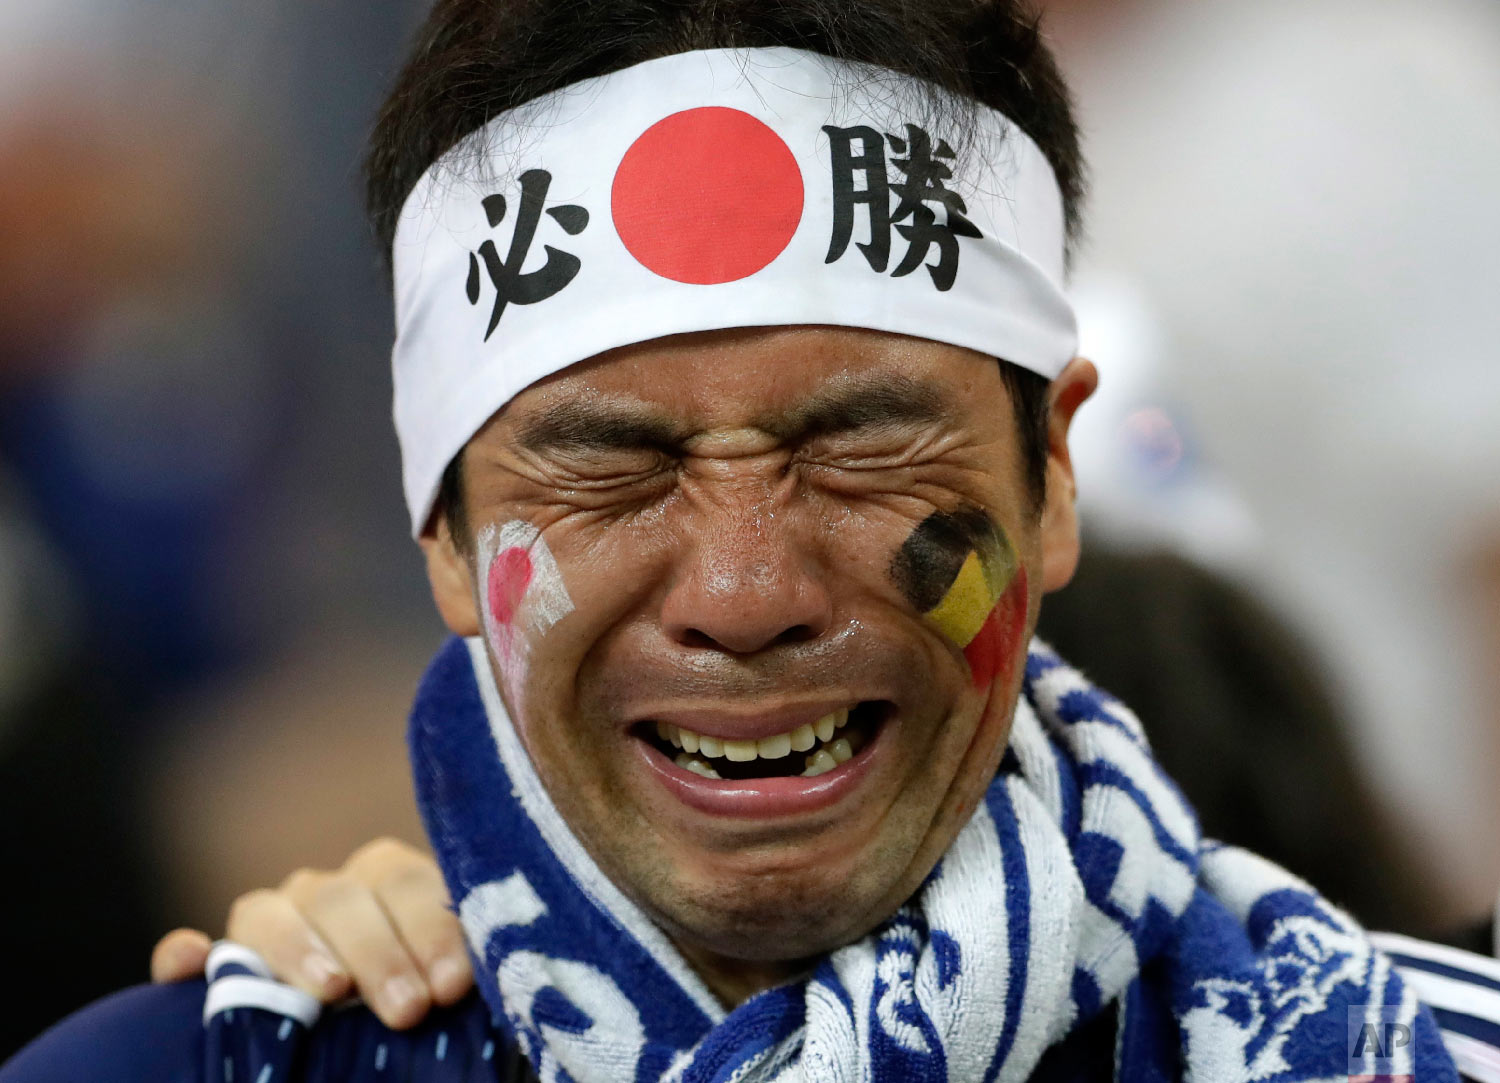 A Japan supporter cries after losing the round of 16 match between Belgium and Japan at the 2018 soccer World Cup in the Rostov Arena, in Rostov-on-Don, Russia, Monday, July 2, 2018. (AP Photo/Petr David Josek)